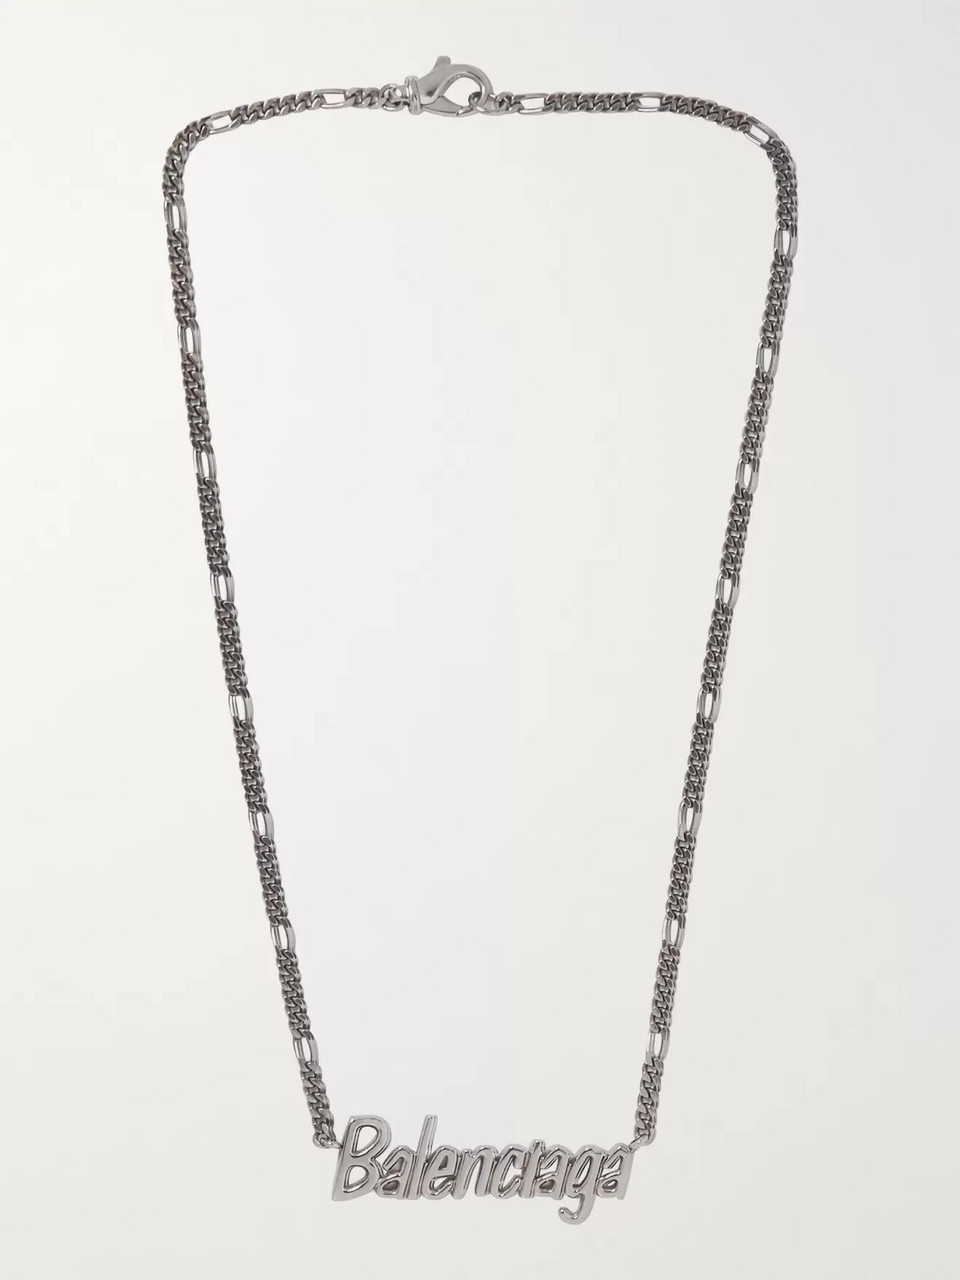 Balenciaga Silver-Tone Necklace